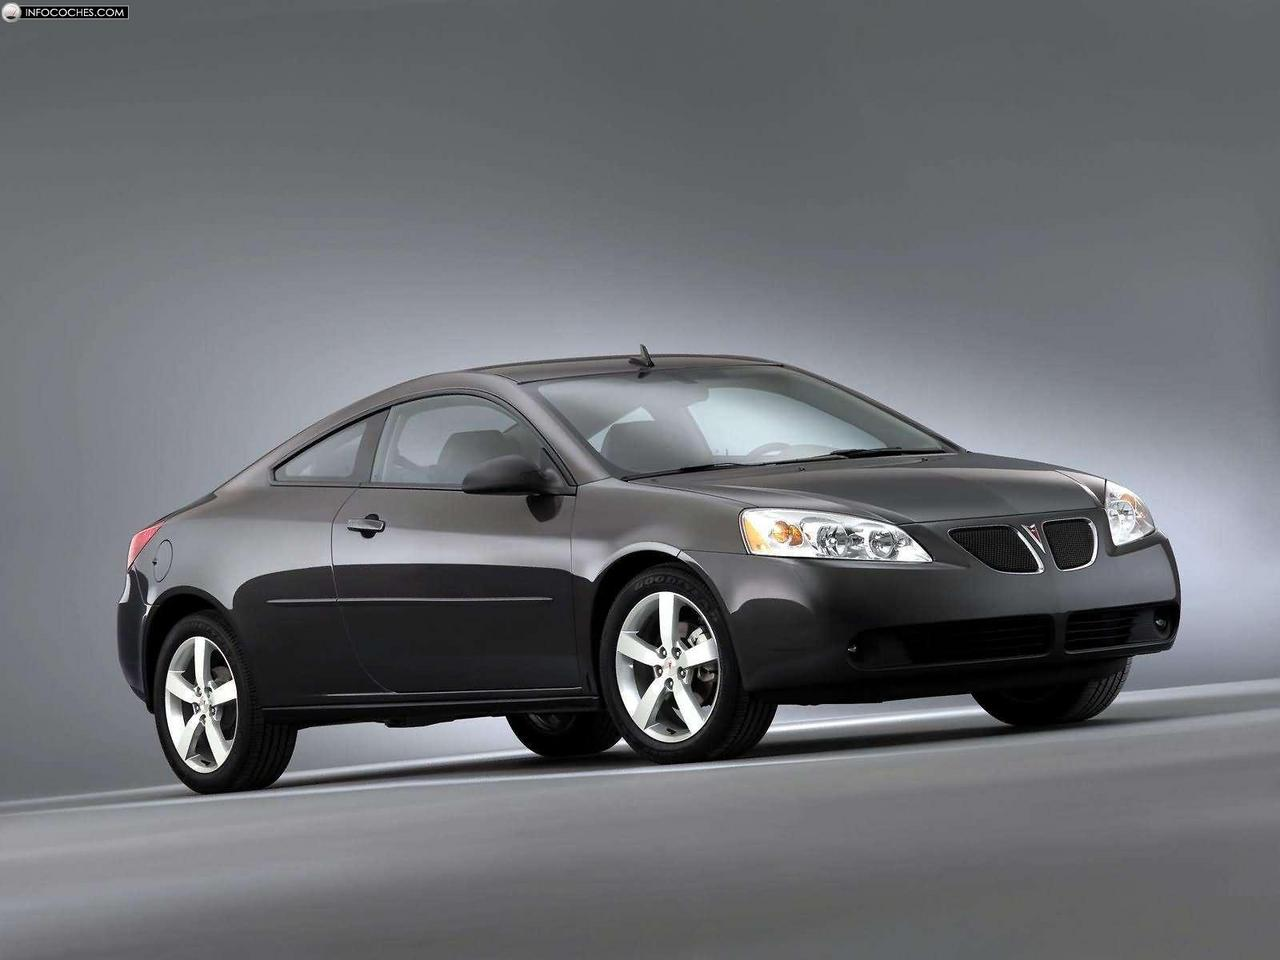 2019 Pontiac G6 GTP Coupe photo - 4